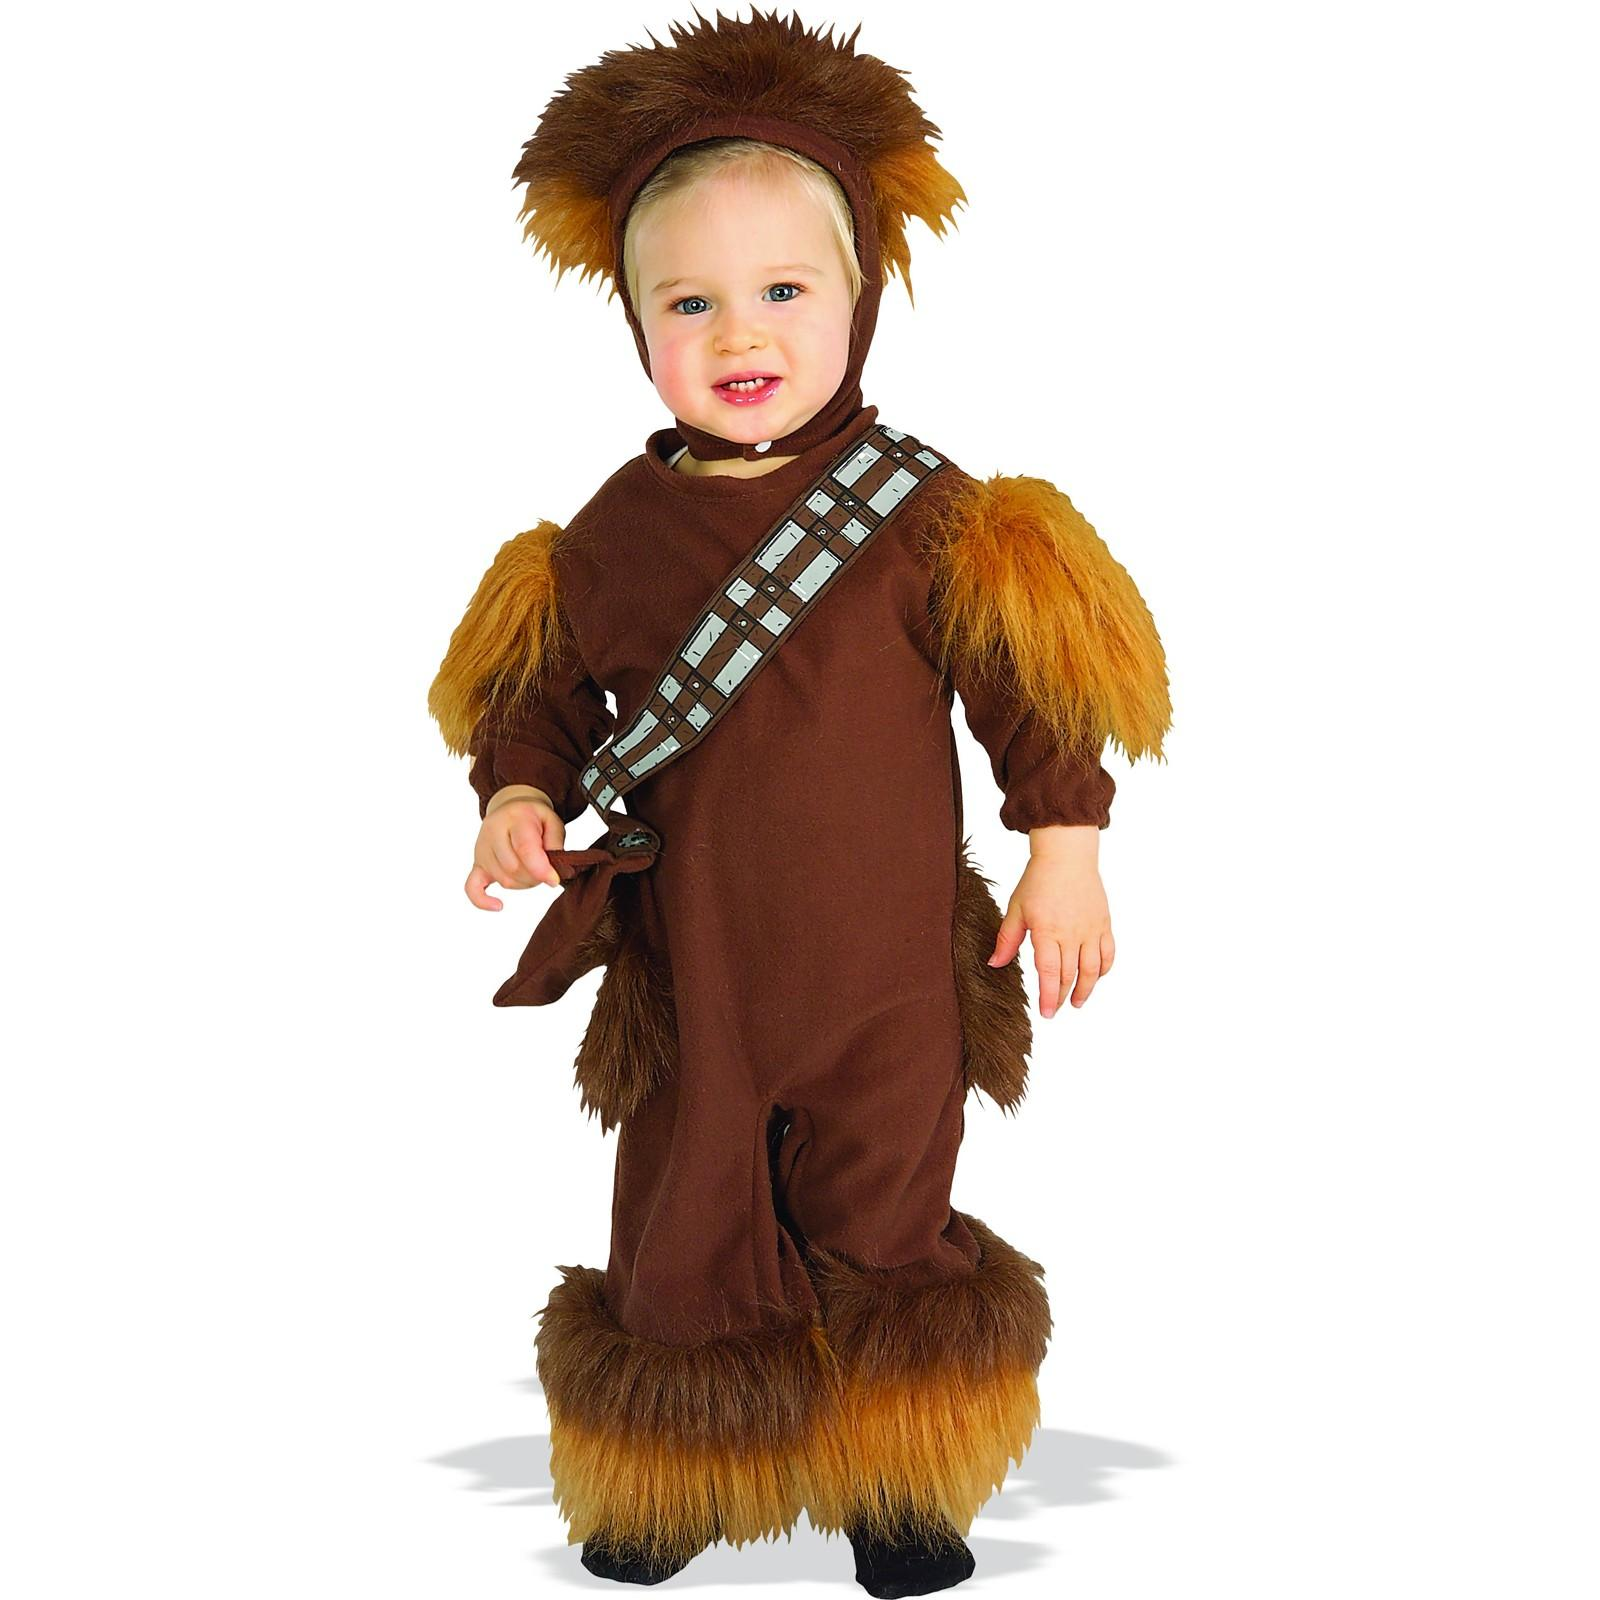 Star Wars Chewbacca Fleece Infant / Toddler Costume - Toddler (2-4)